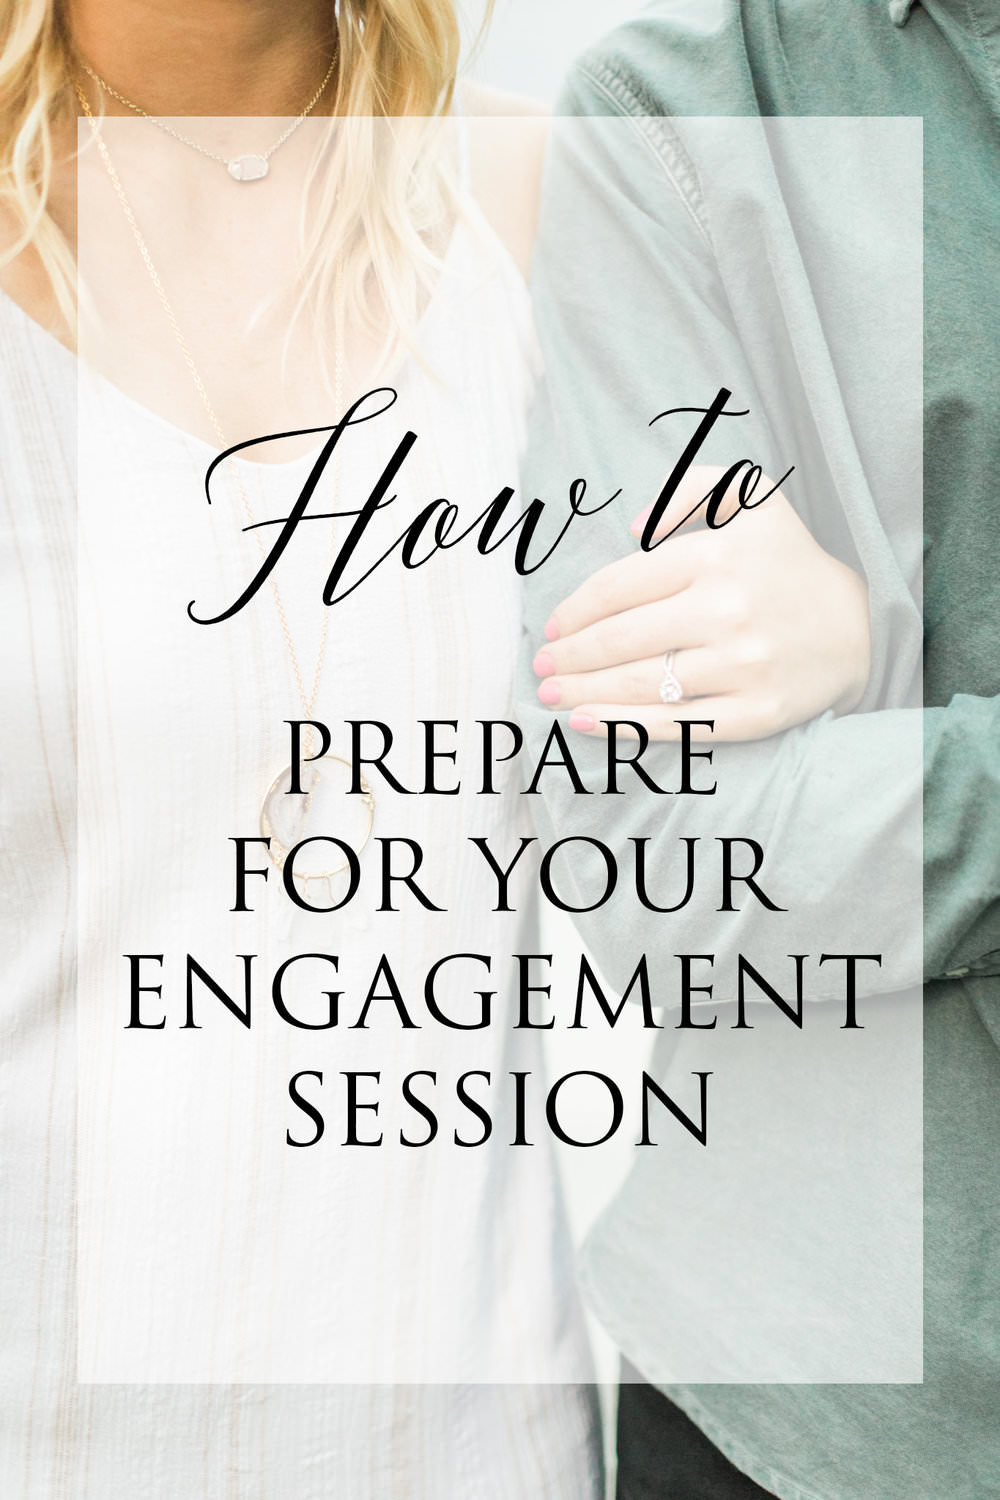 How to Prepare for Your Engagement Session - Whether you're unsure about what to wear to your engagement session or how best to prepare for it in advance, we've got a list of quick tips to help you...read more